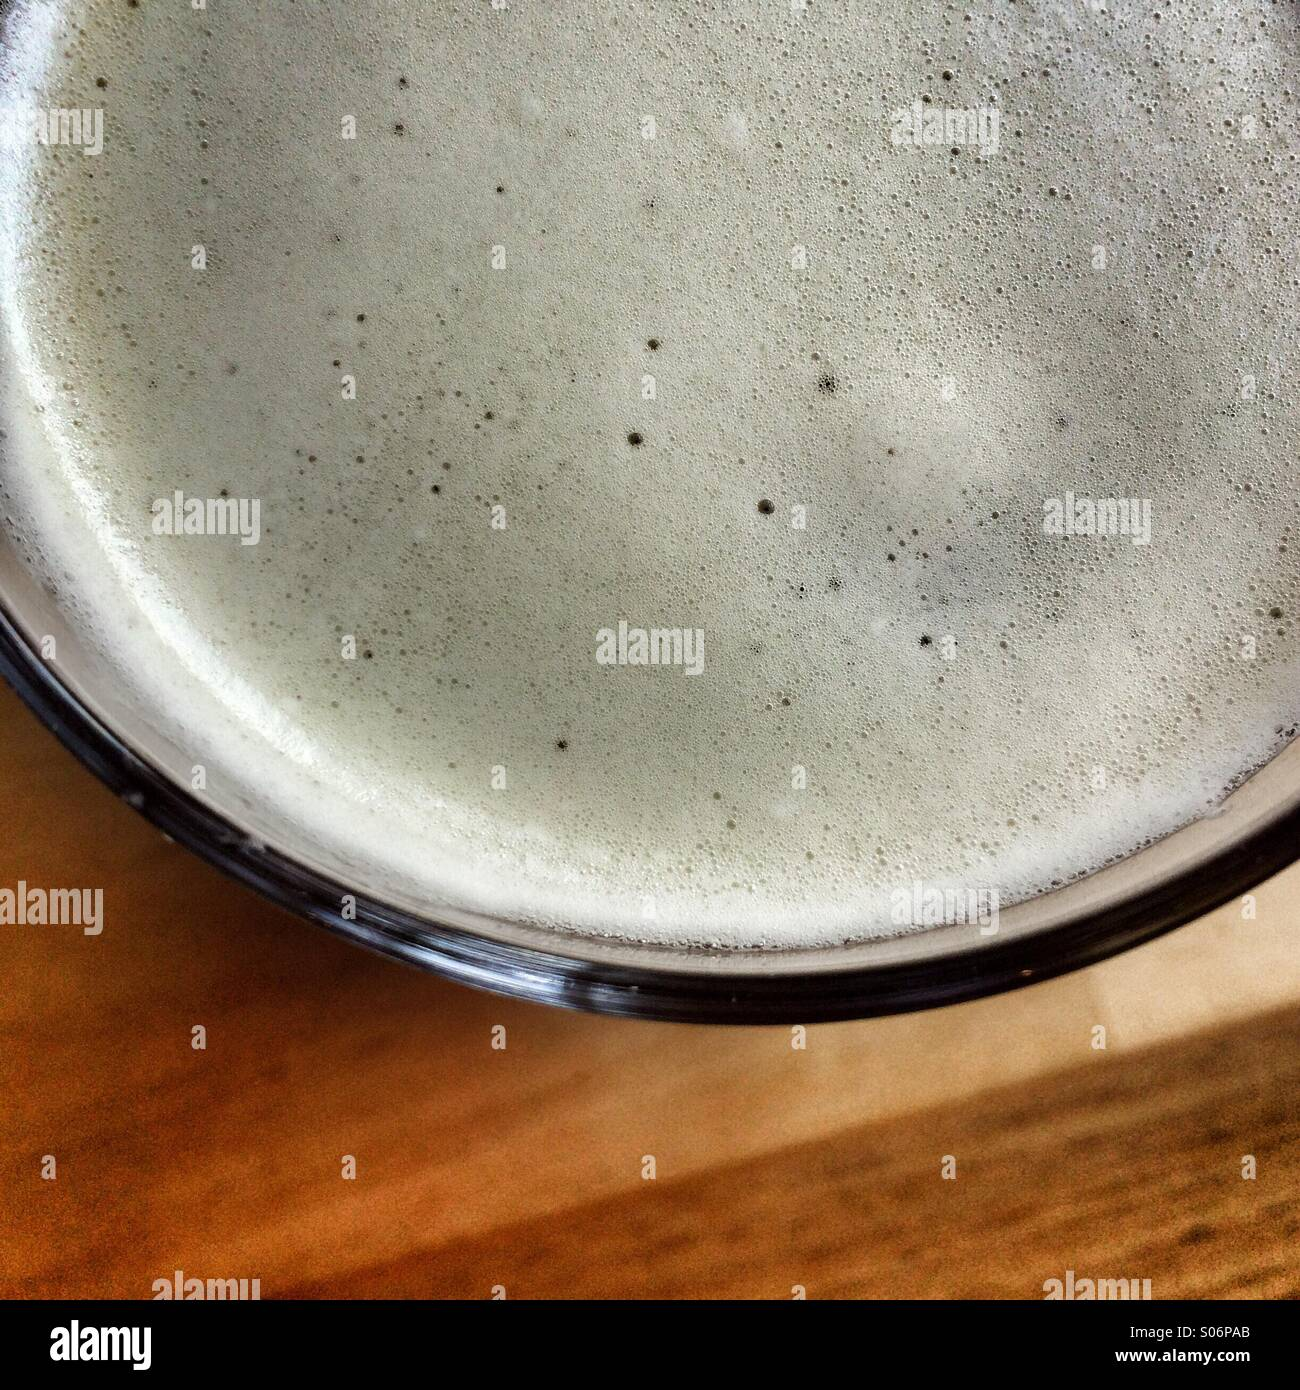 View looking down onto pint beer glass showing frothy bubbles - Stock Image